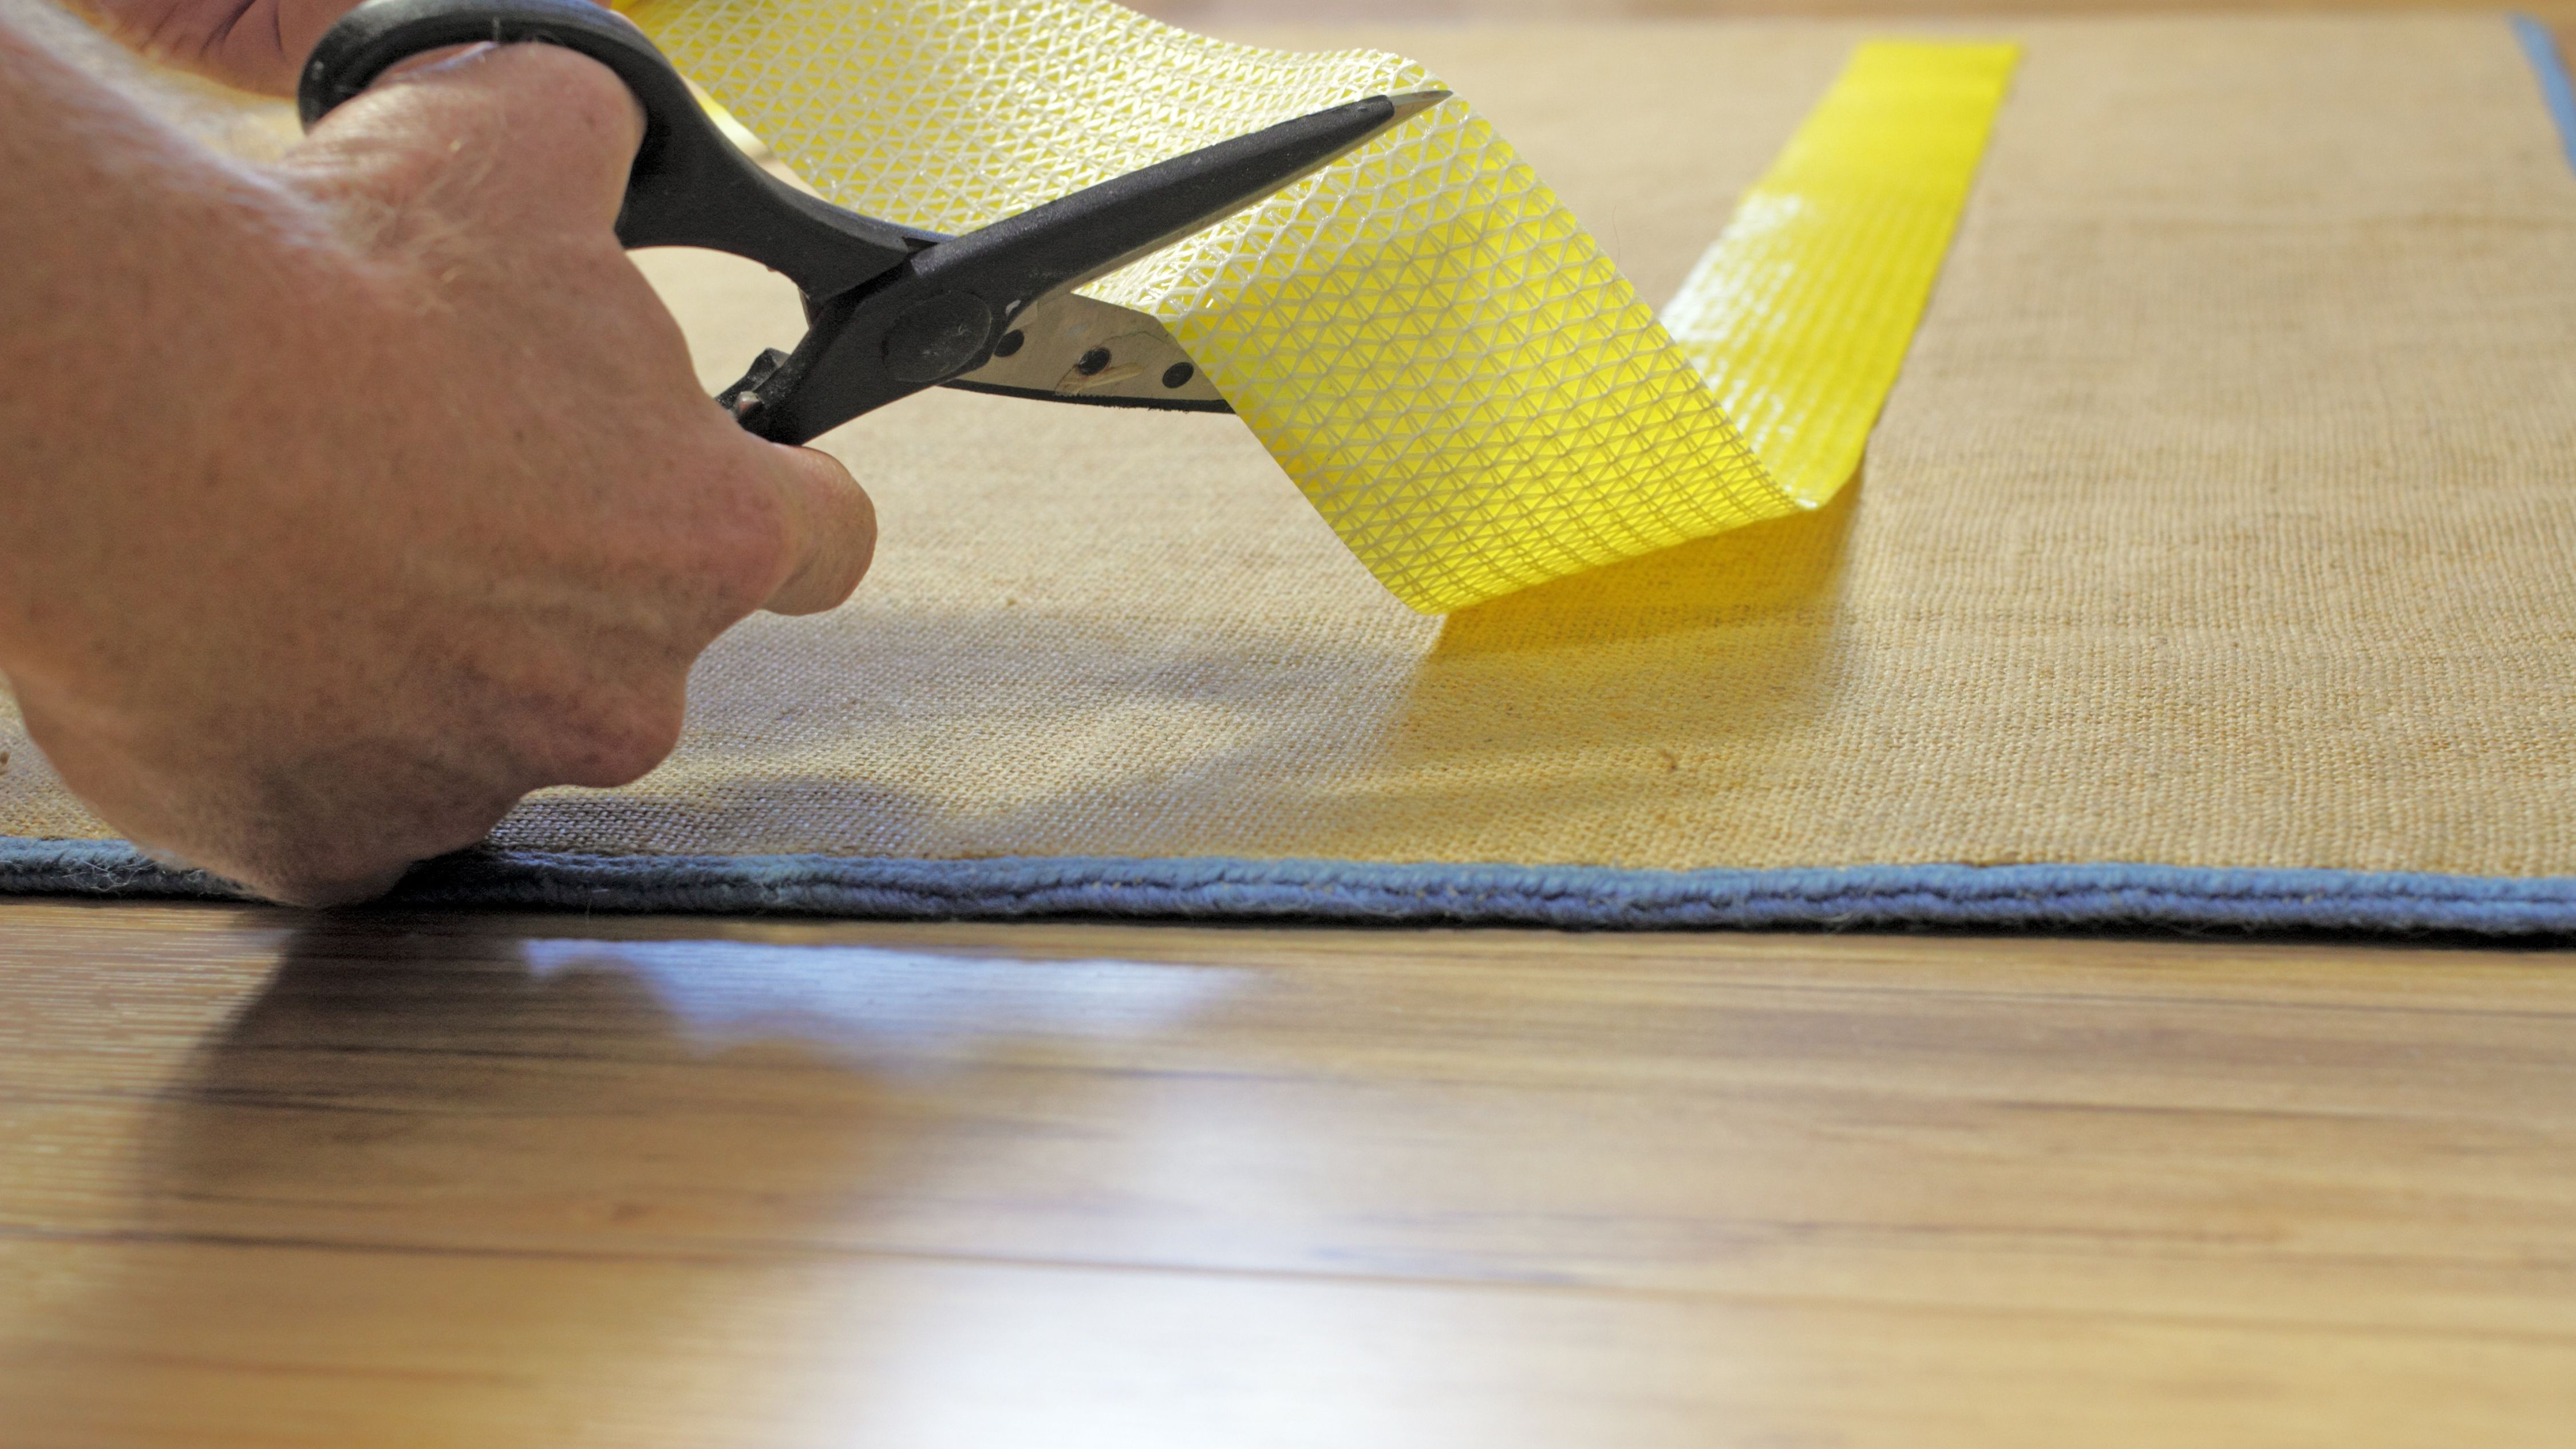 11 Tips For How To Keep Rugs From Sliding, Stop Rug From Slipping On Laminate Flooring